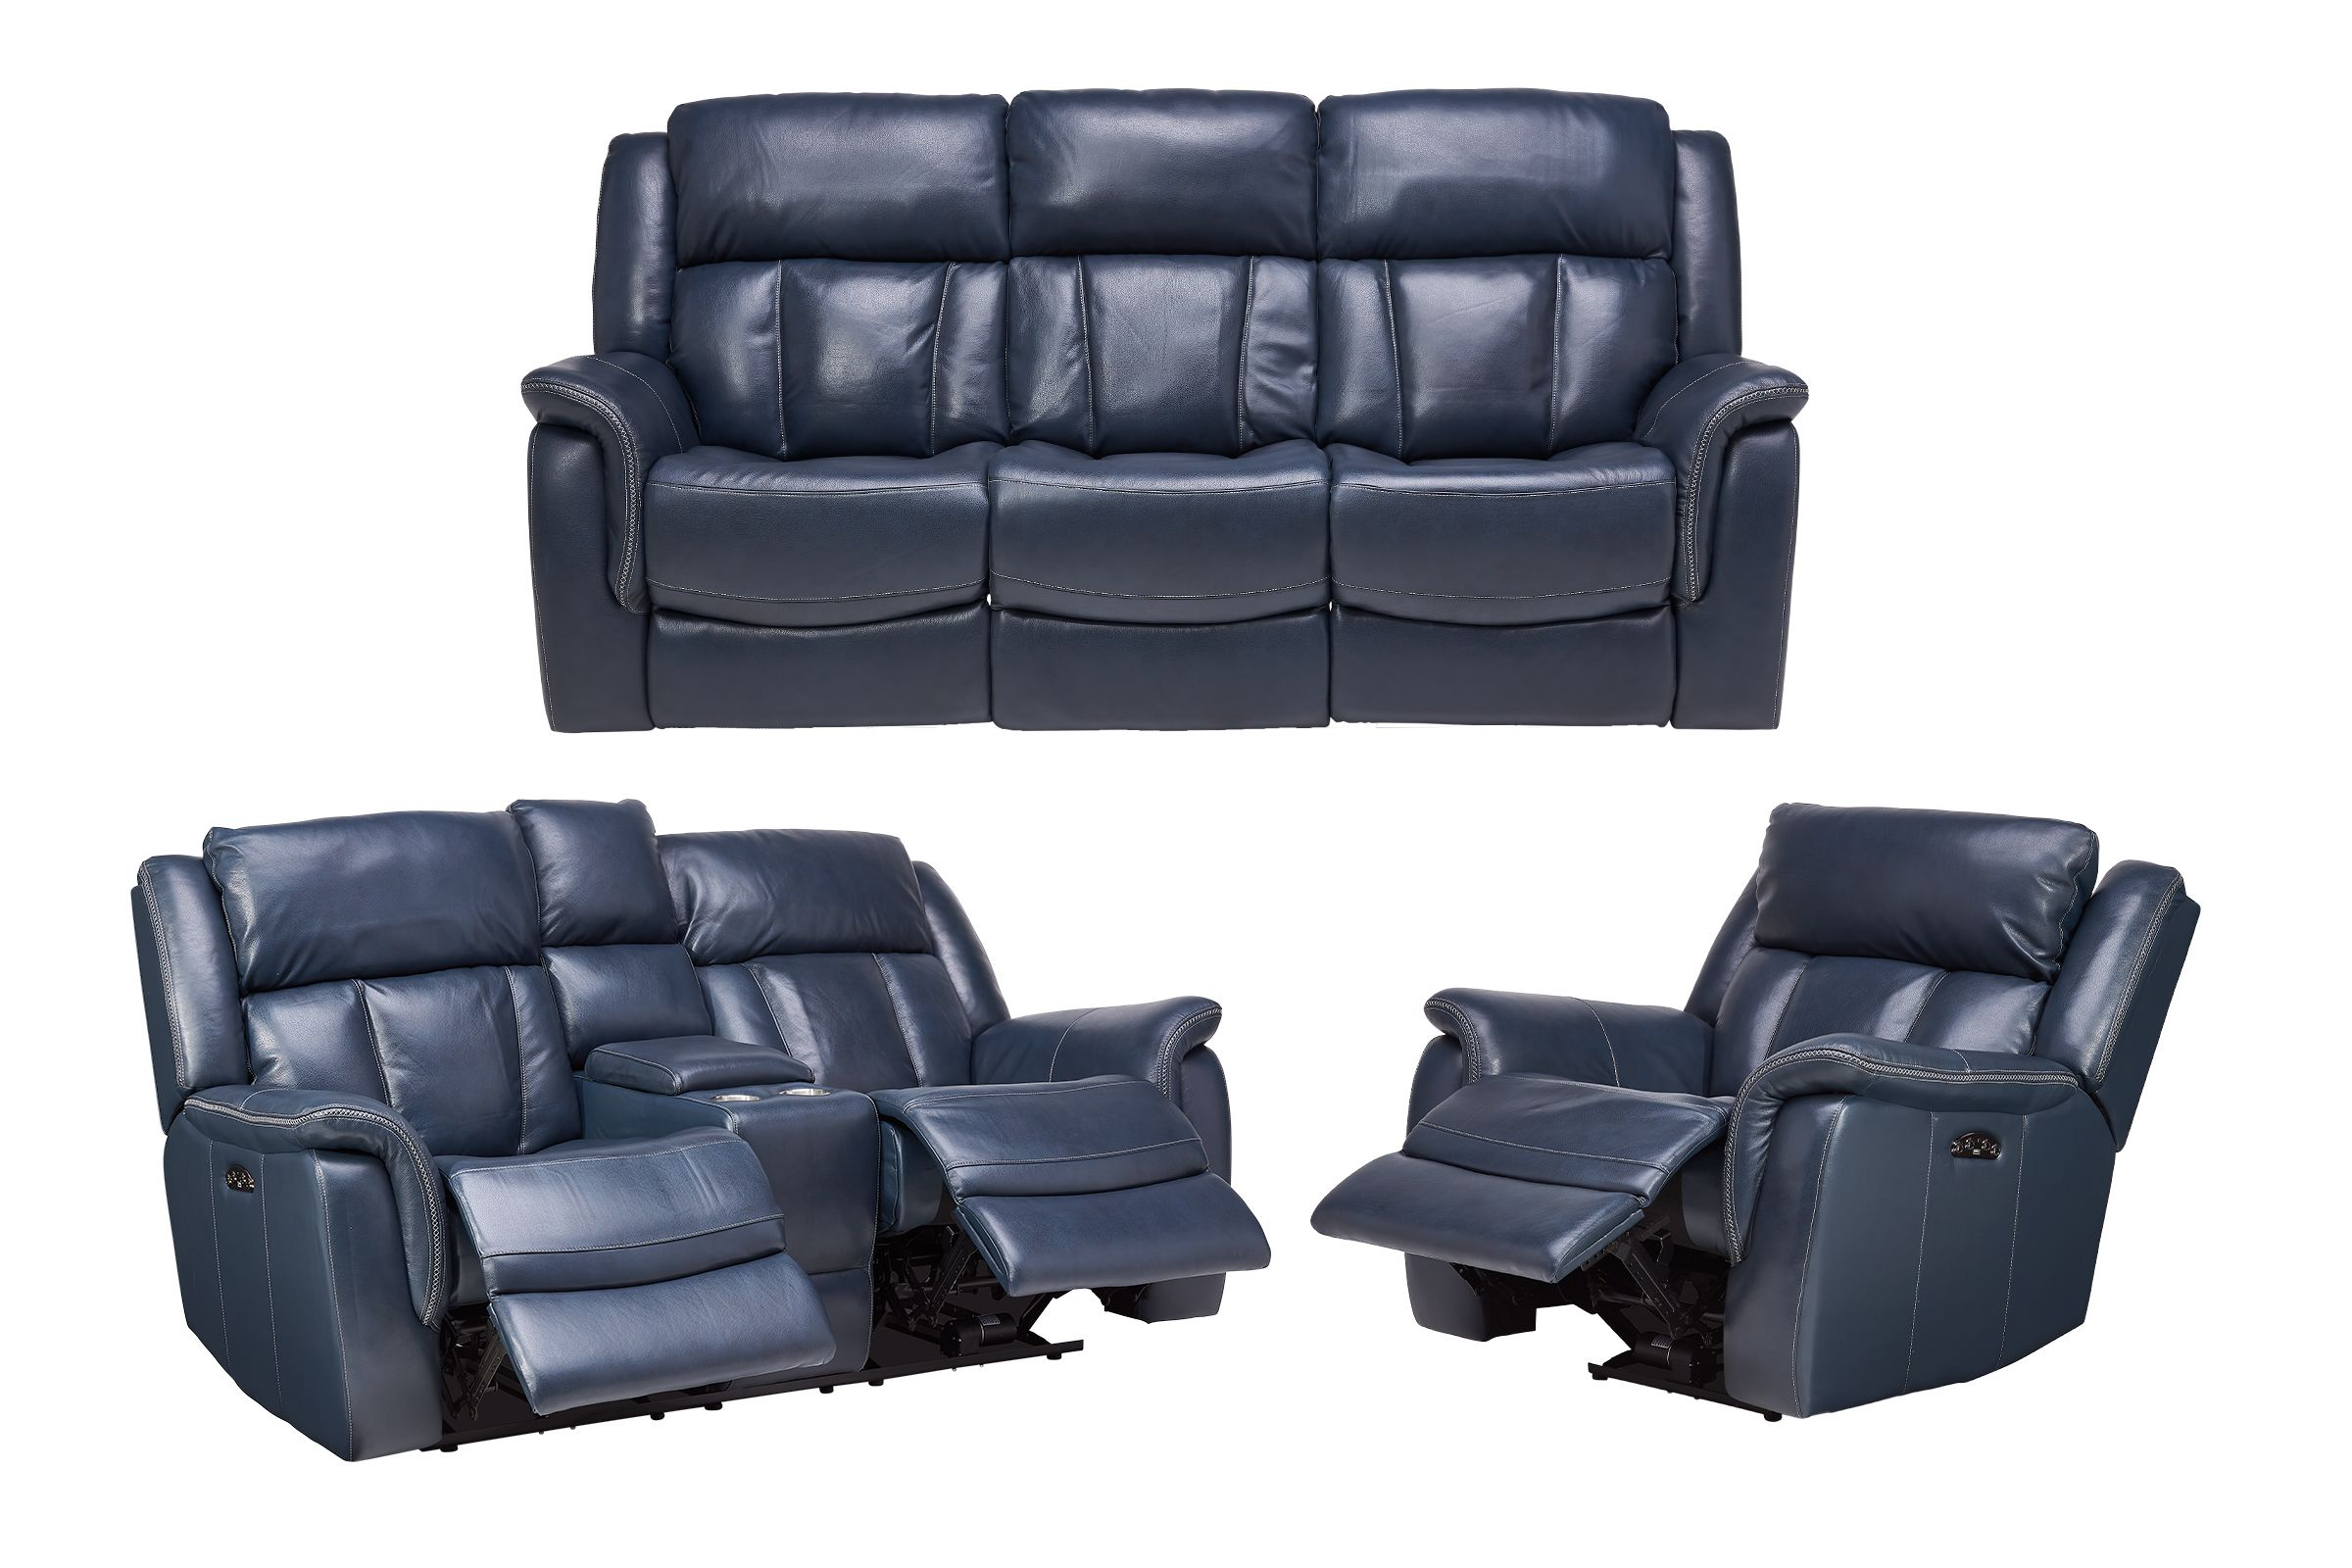 Patriot Blue Leather Dual Power Reclining Sofa Loveseat Recliner